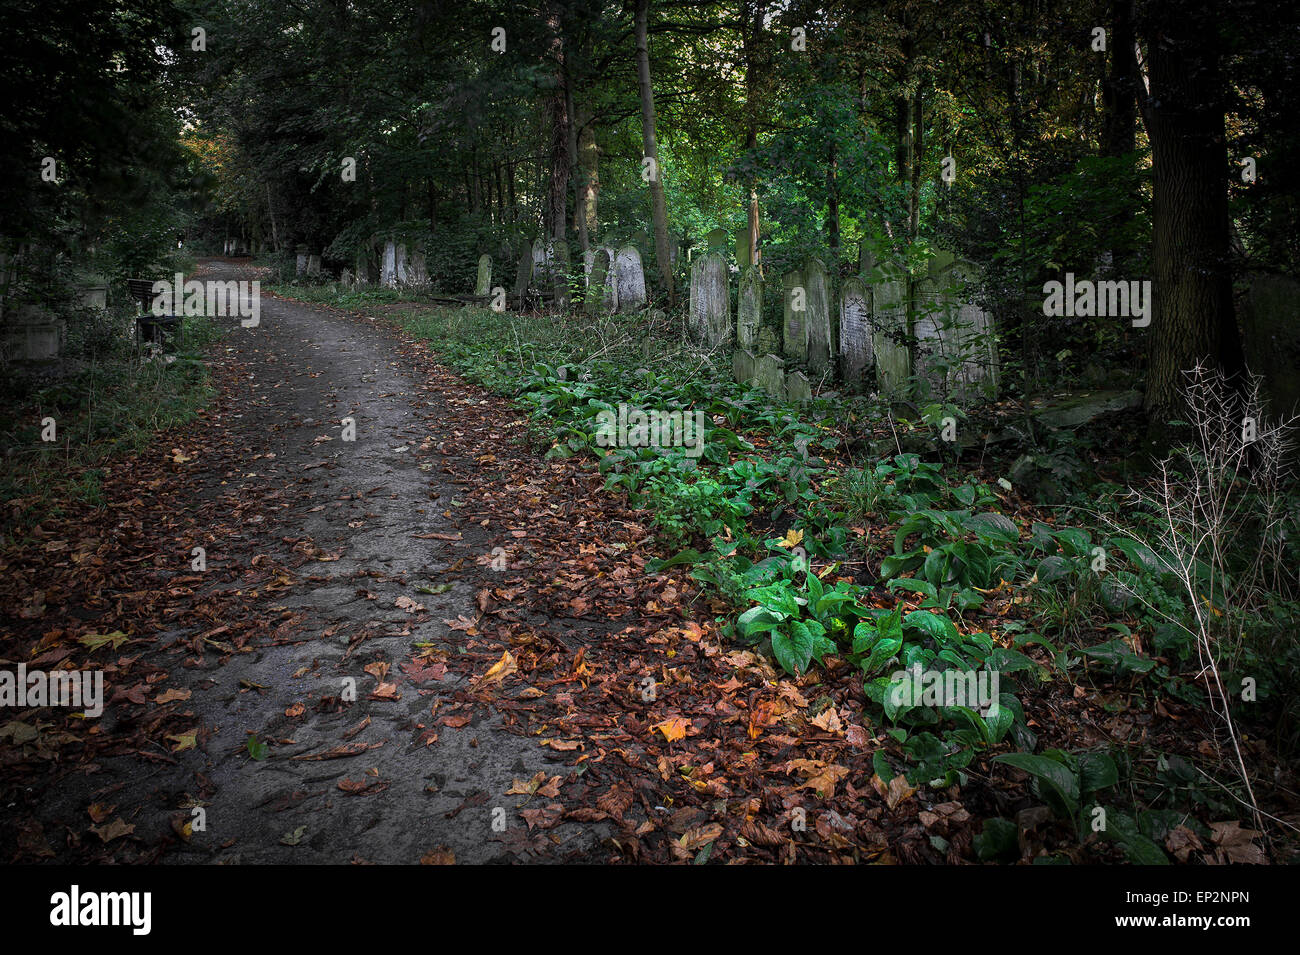 A path running through Tower Hamlets Cemetery in the East End of London. Stock Photo